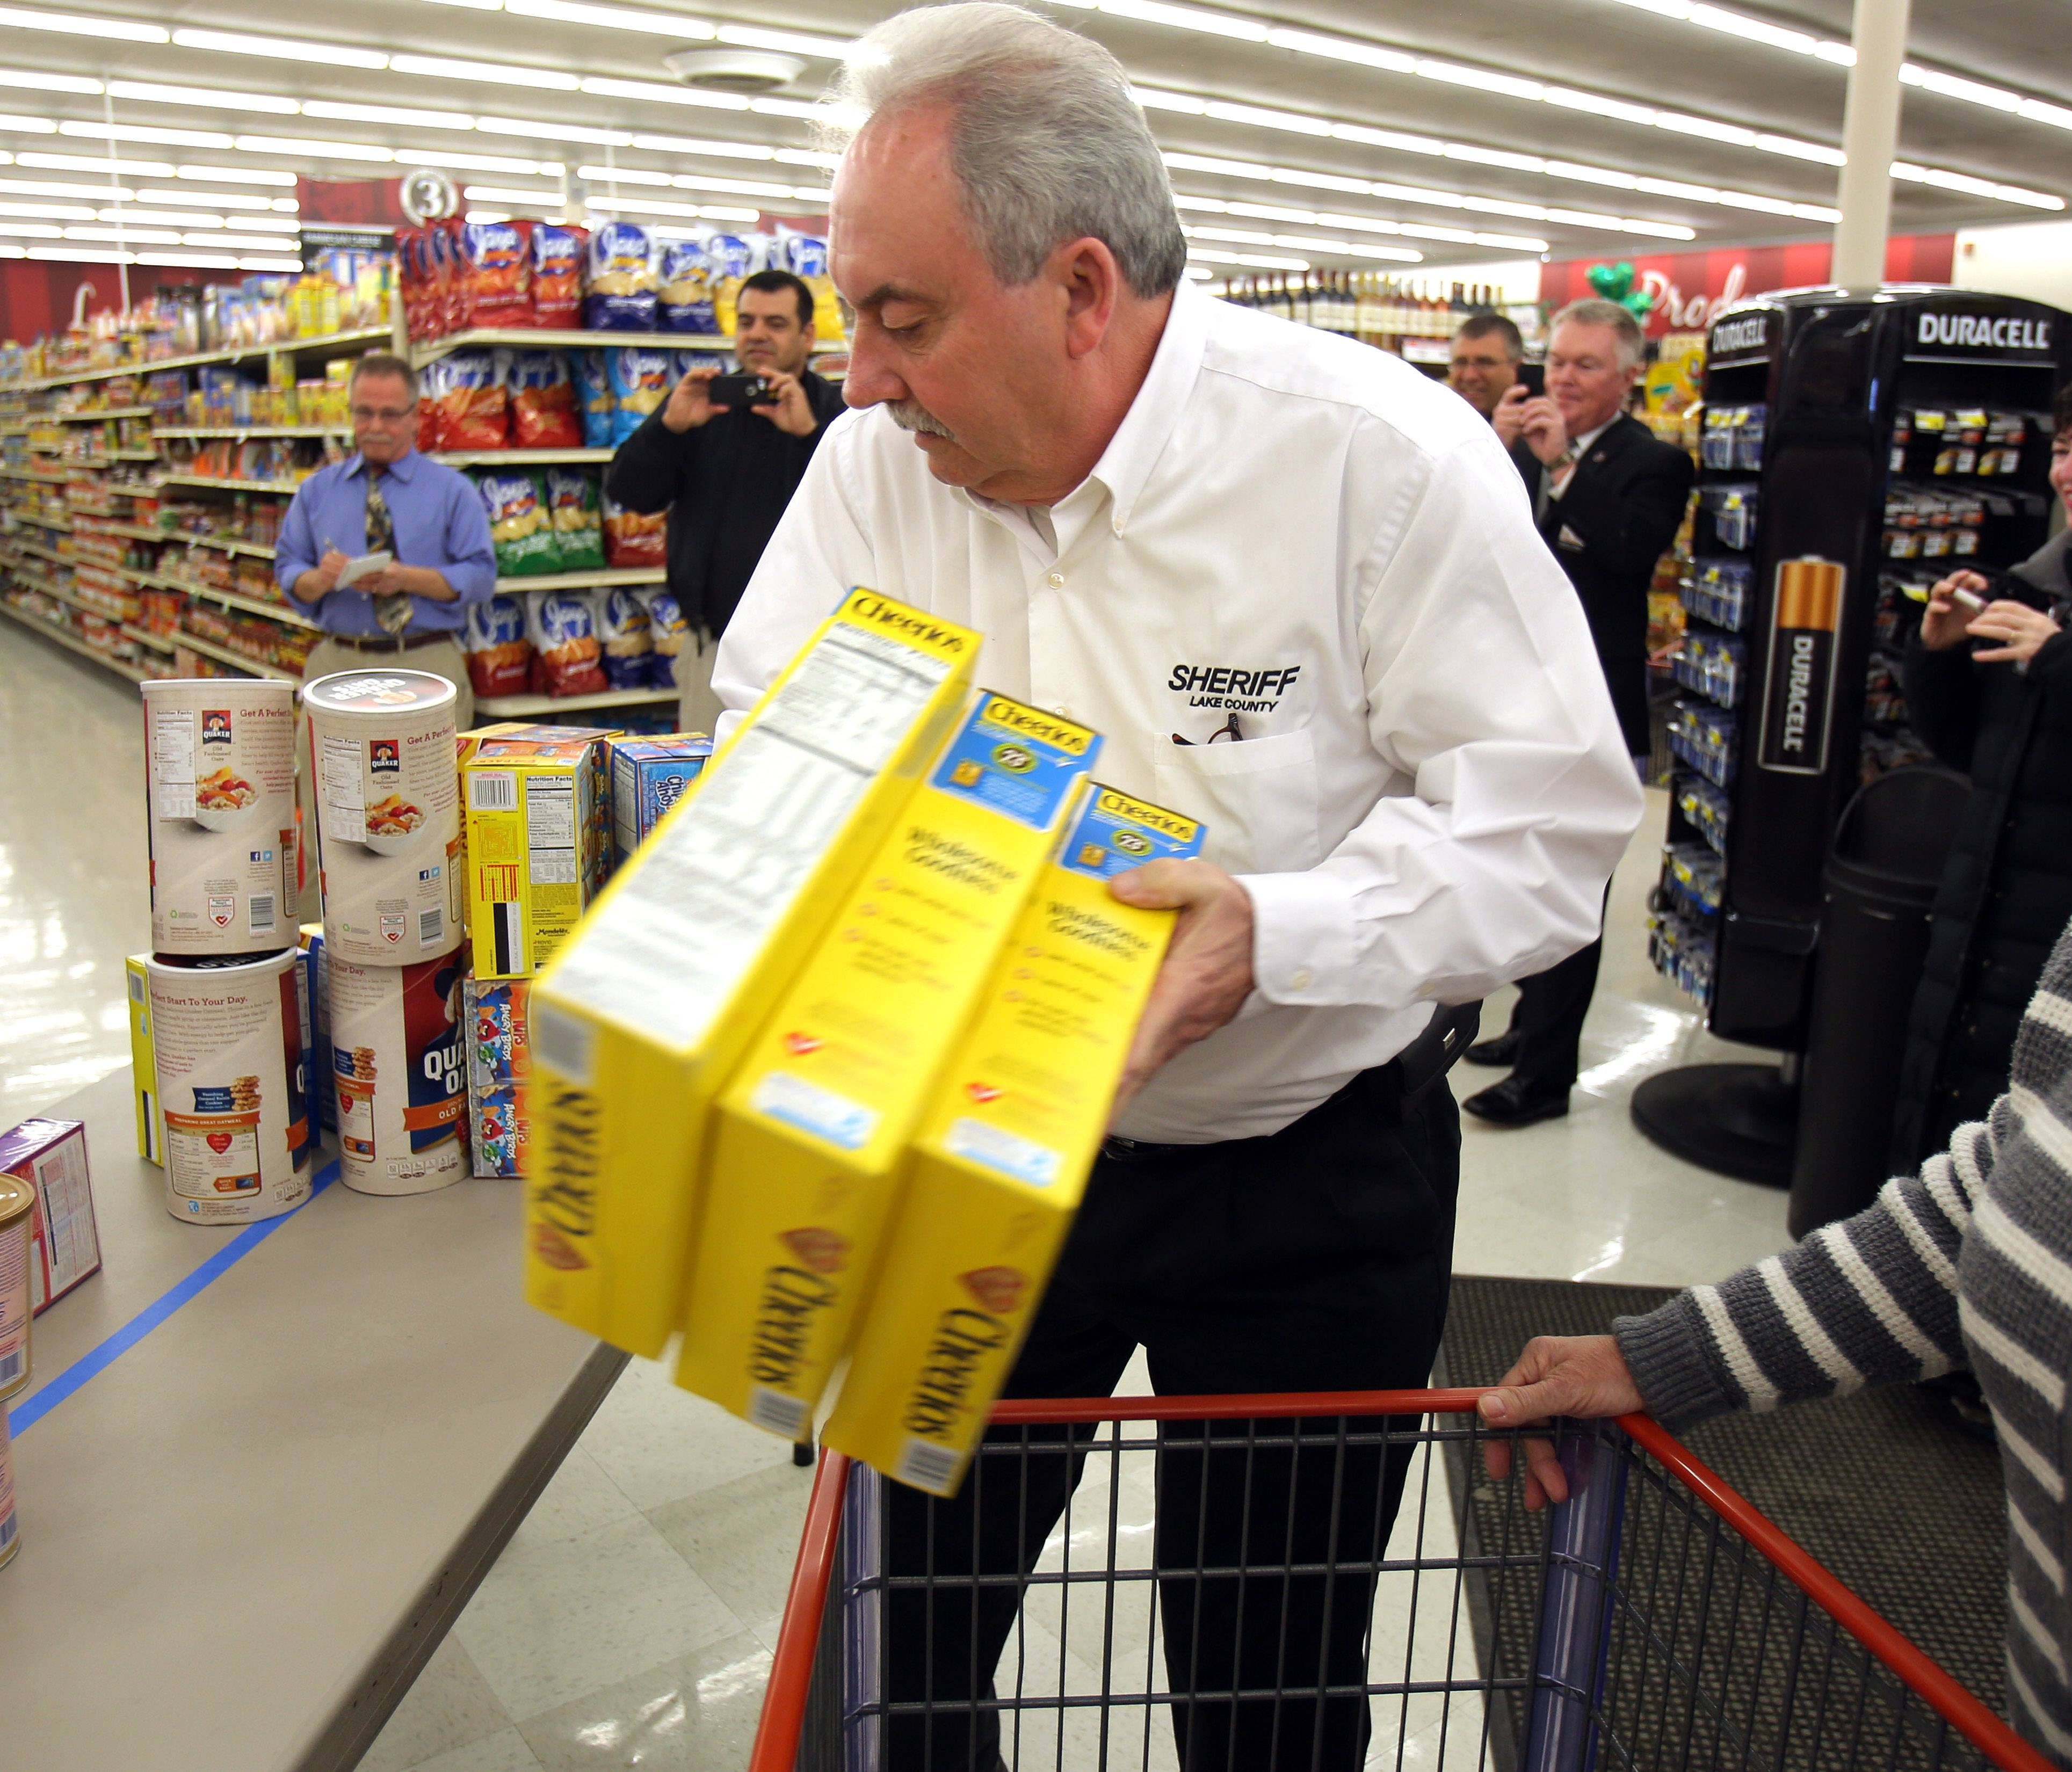 Lake County Undersheriff Ray Rose loads a cart Thursday at the Piggly Wiggly store in Antioch during the 16th Annual Race for Hunger. Rose and Sheriff Mark Curran had five minutes to fill their carts with nonperishable items for local food pantries.